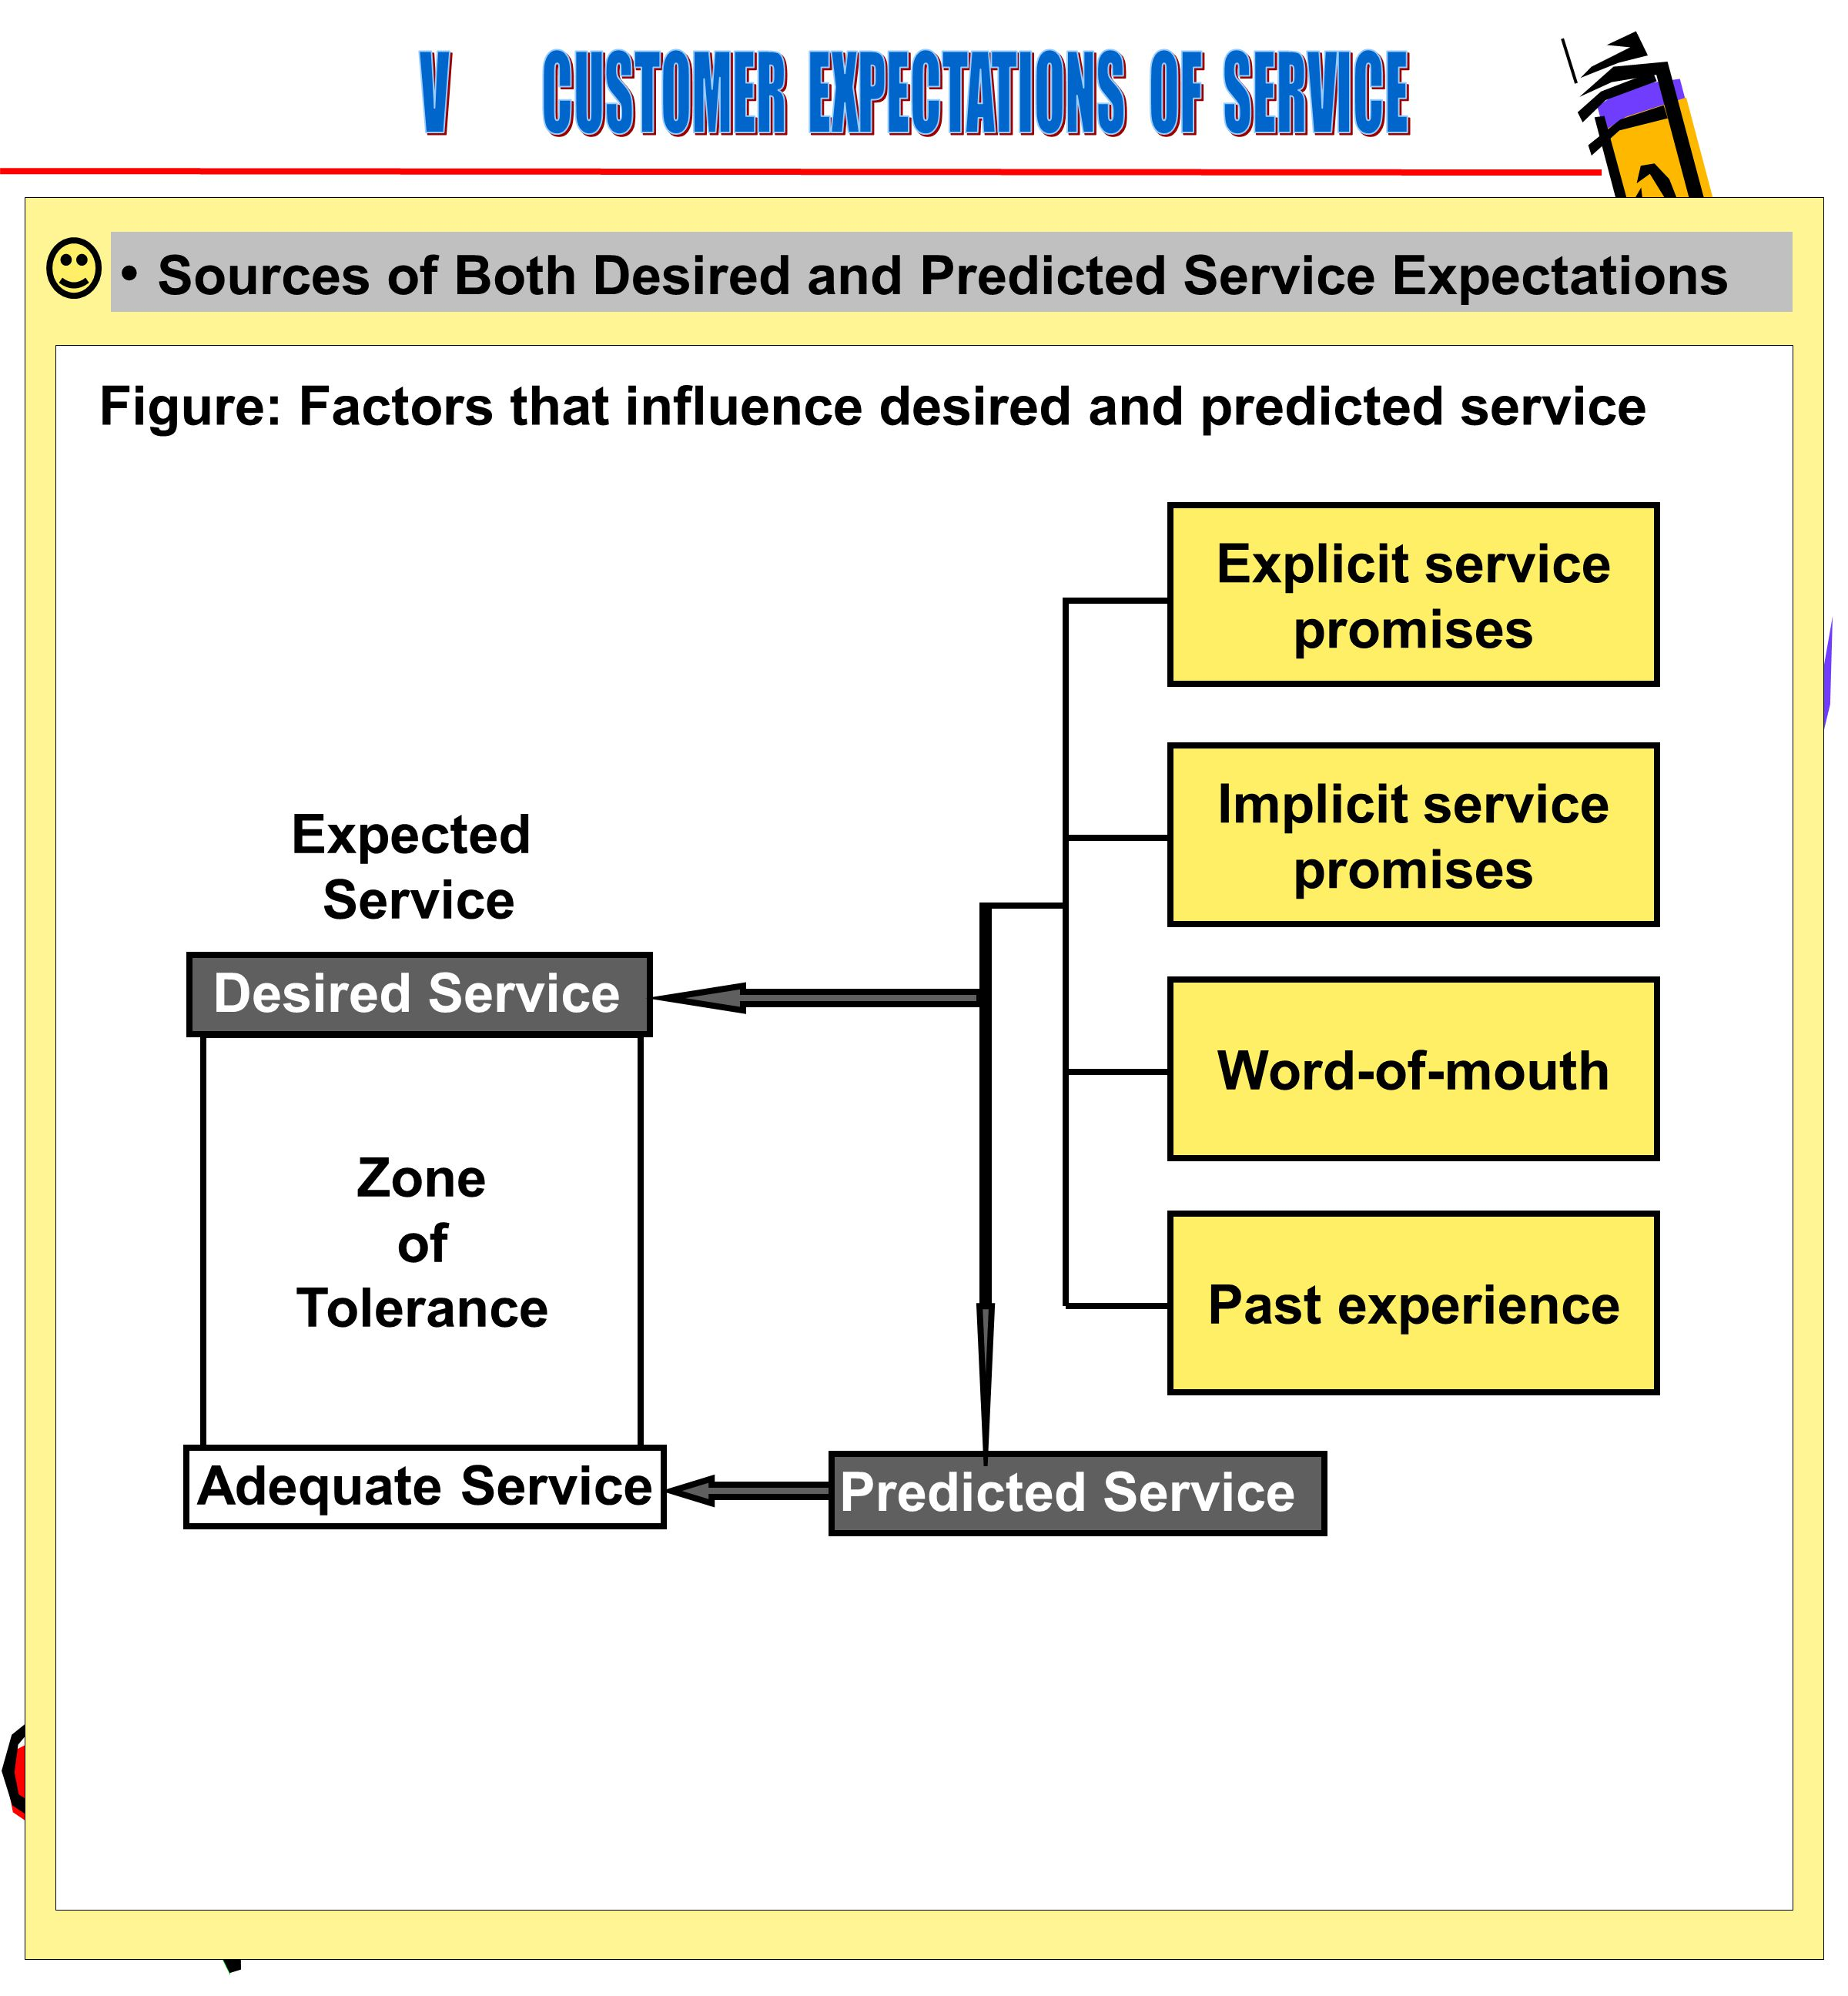 V CUSTOMER EXPECTATIONS OF SERVICE